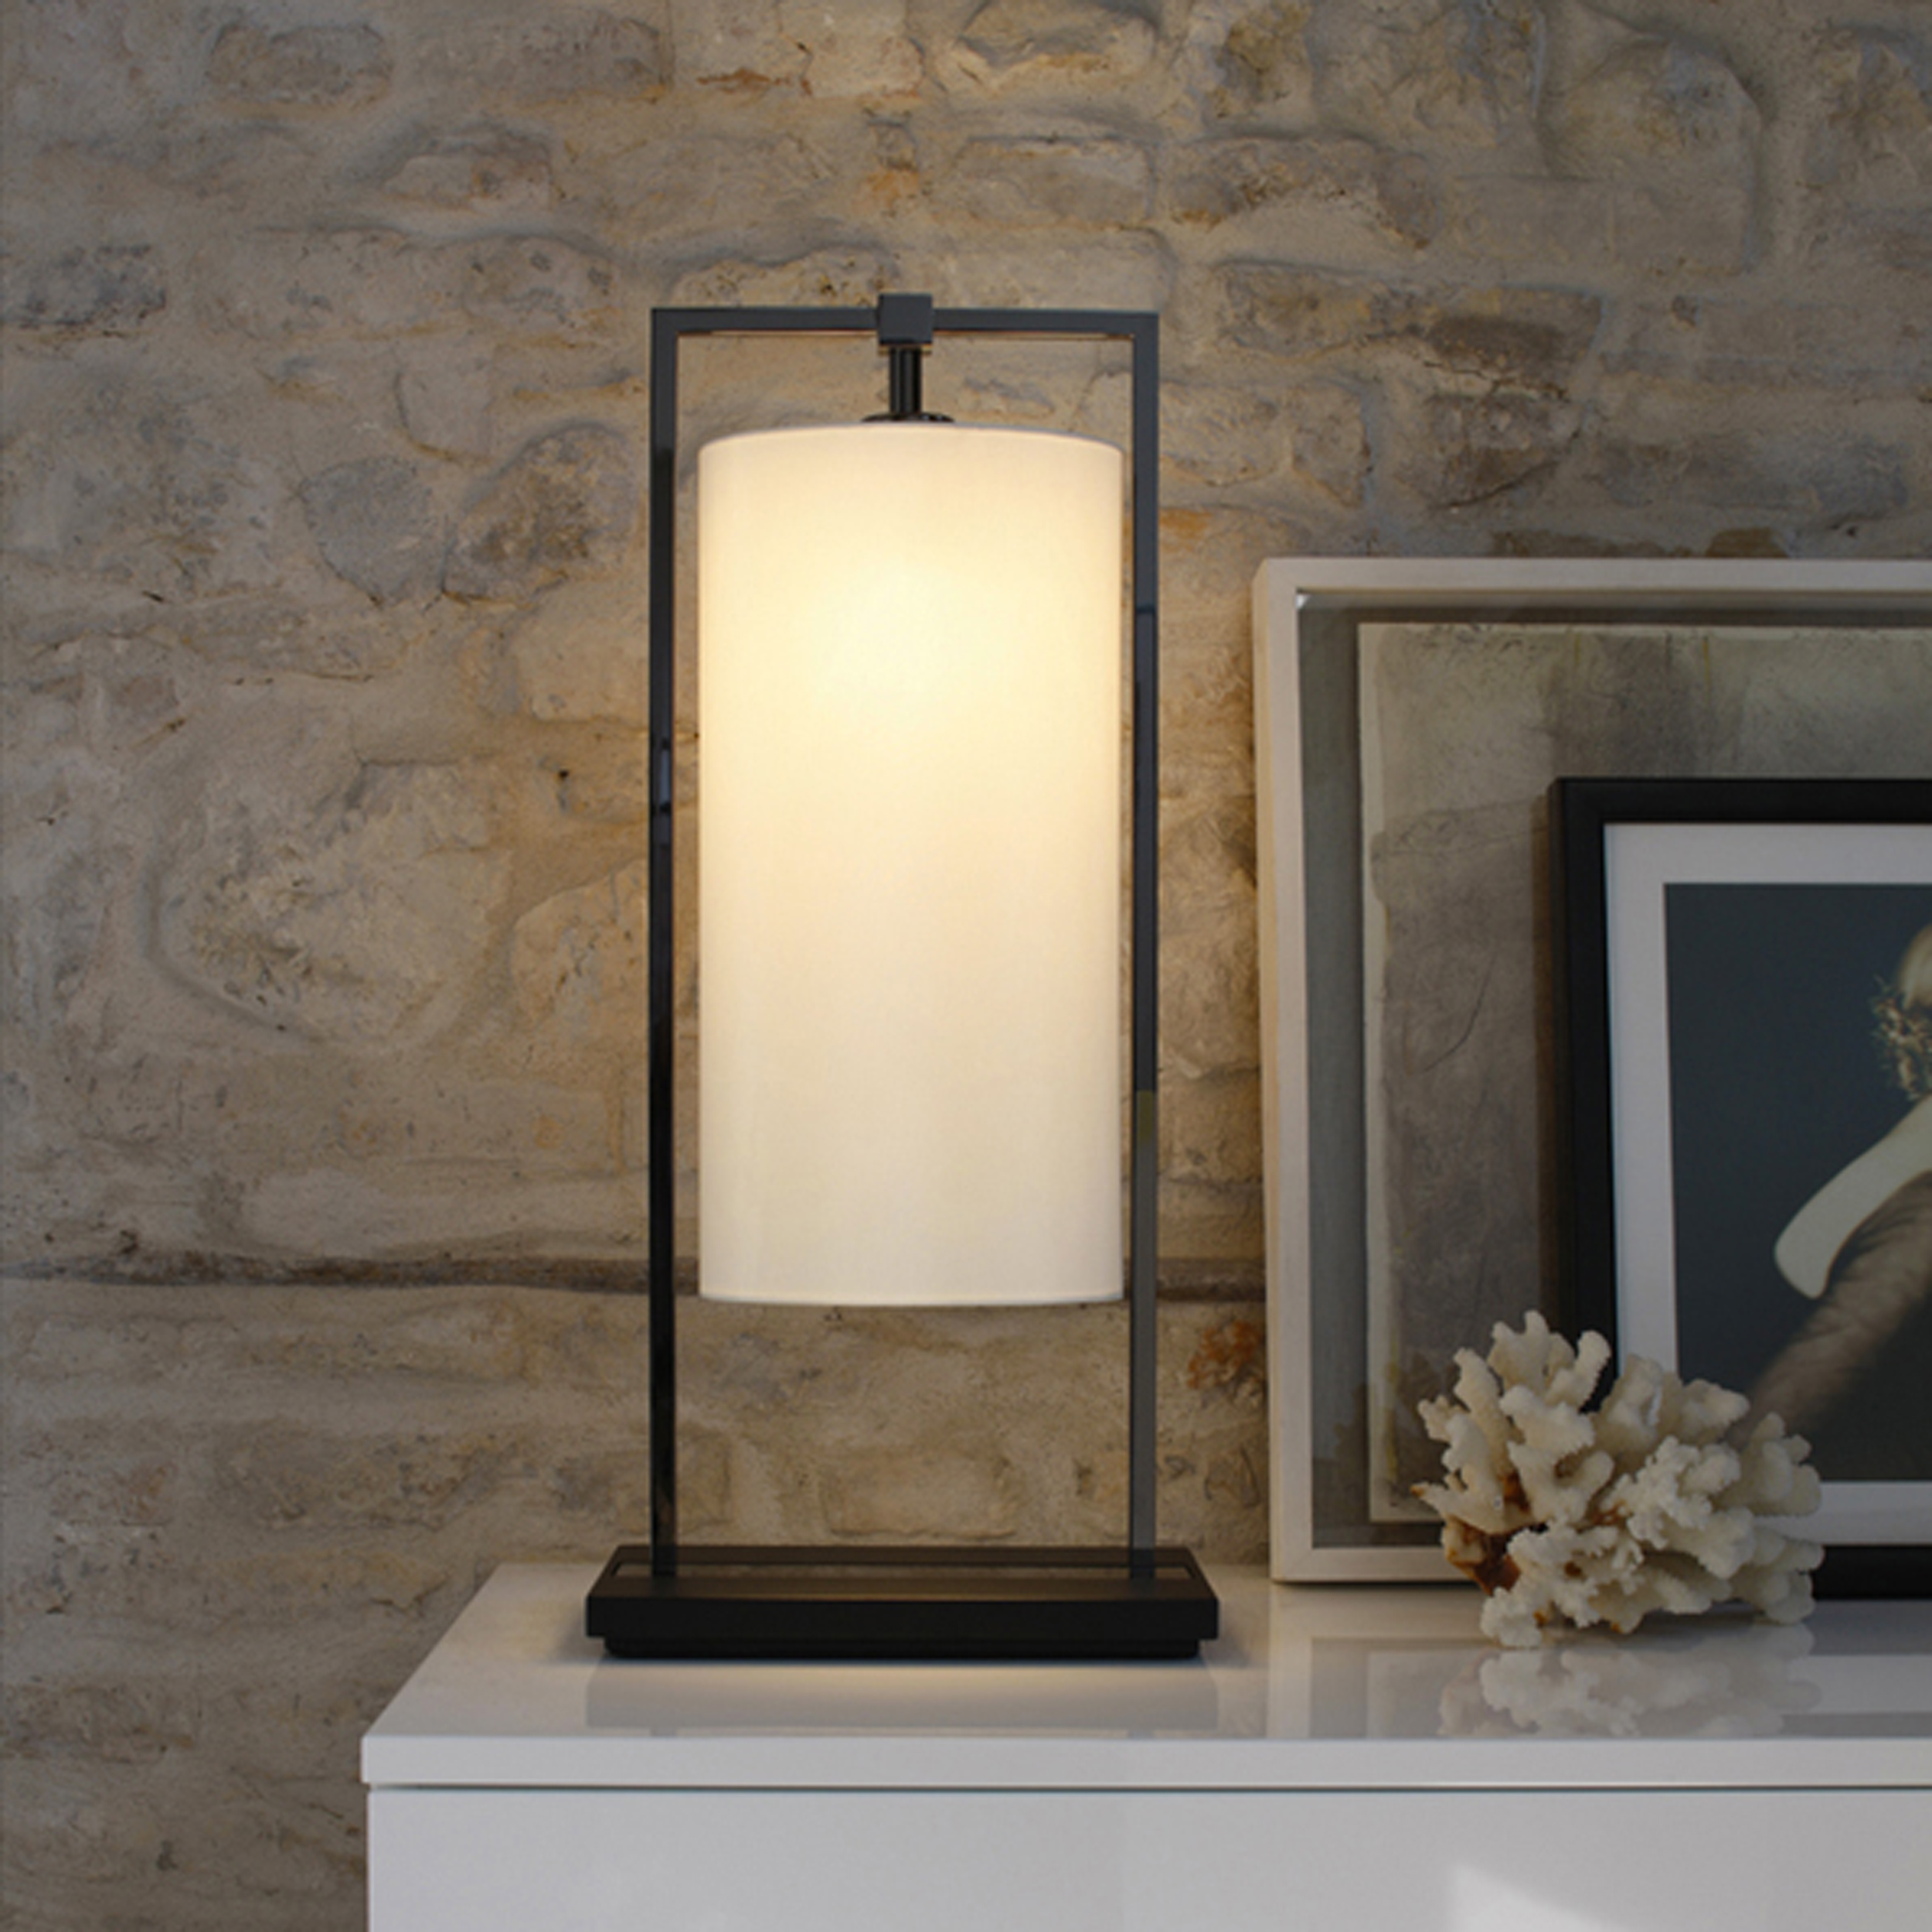 Contardi Athena Ap Wall Light Dark Oak White Percaline